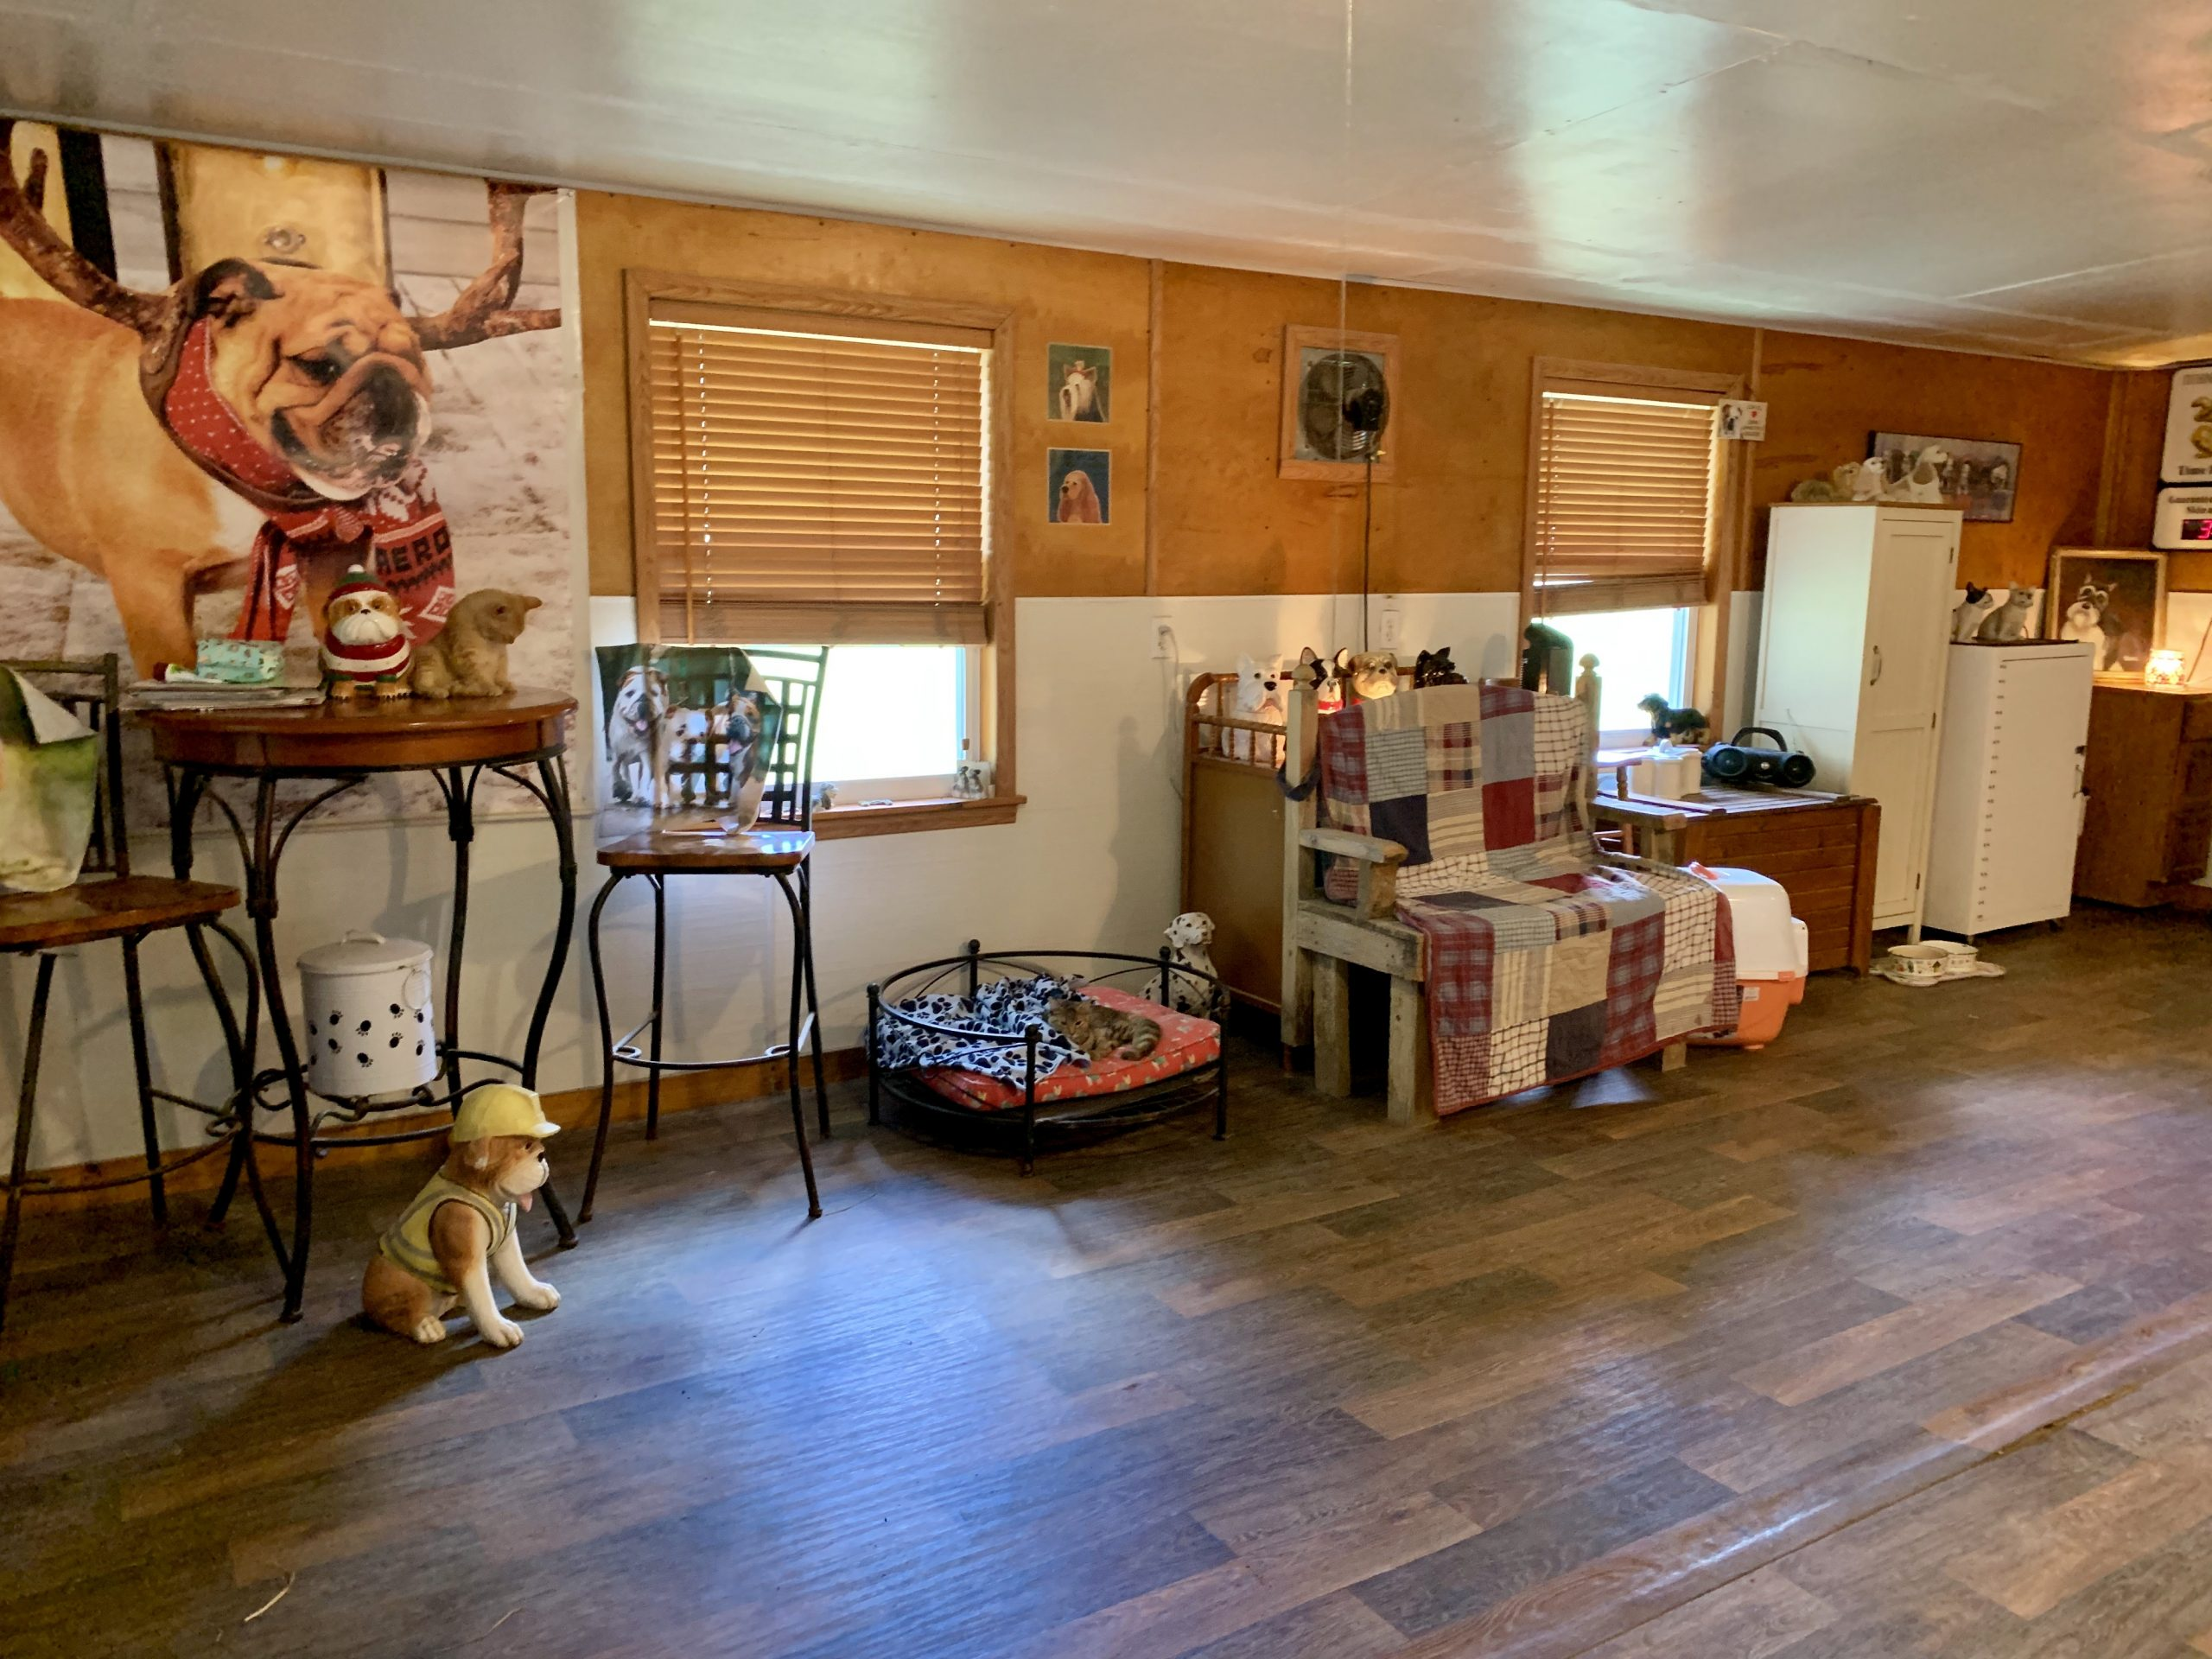 Becky's whelping room